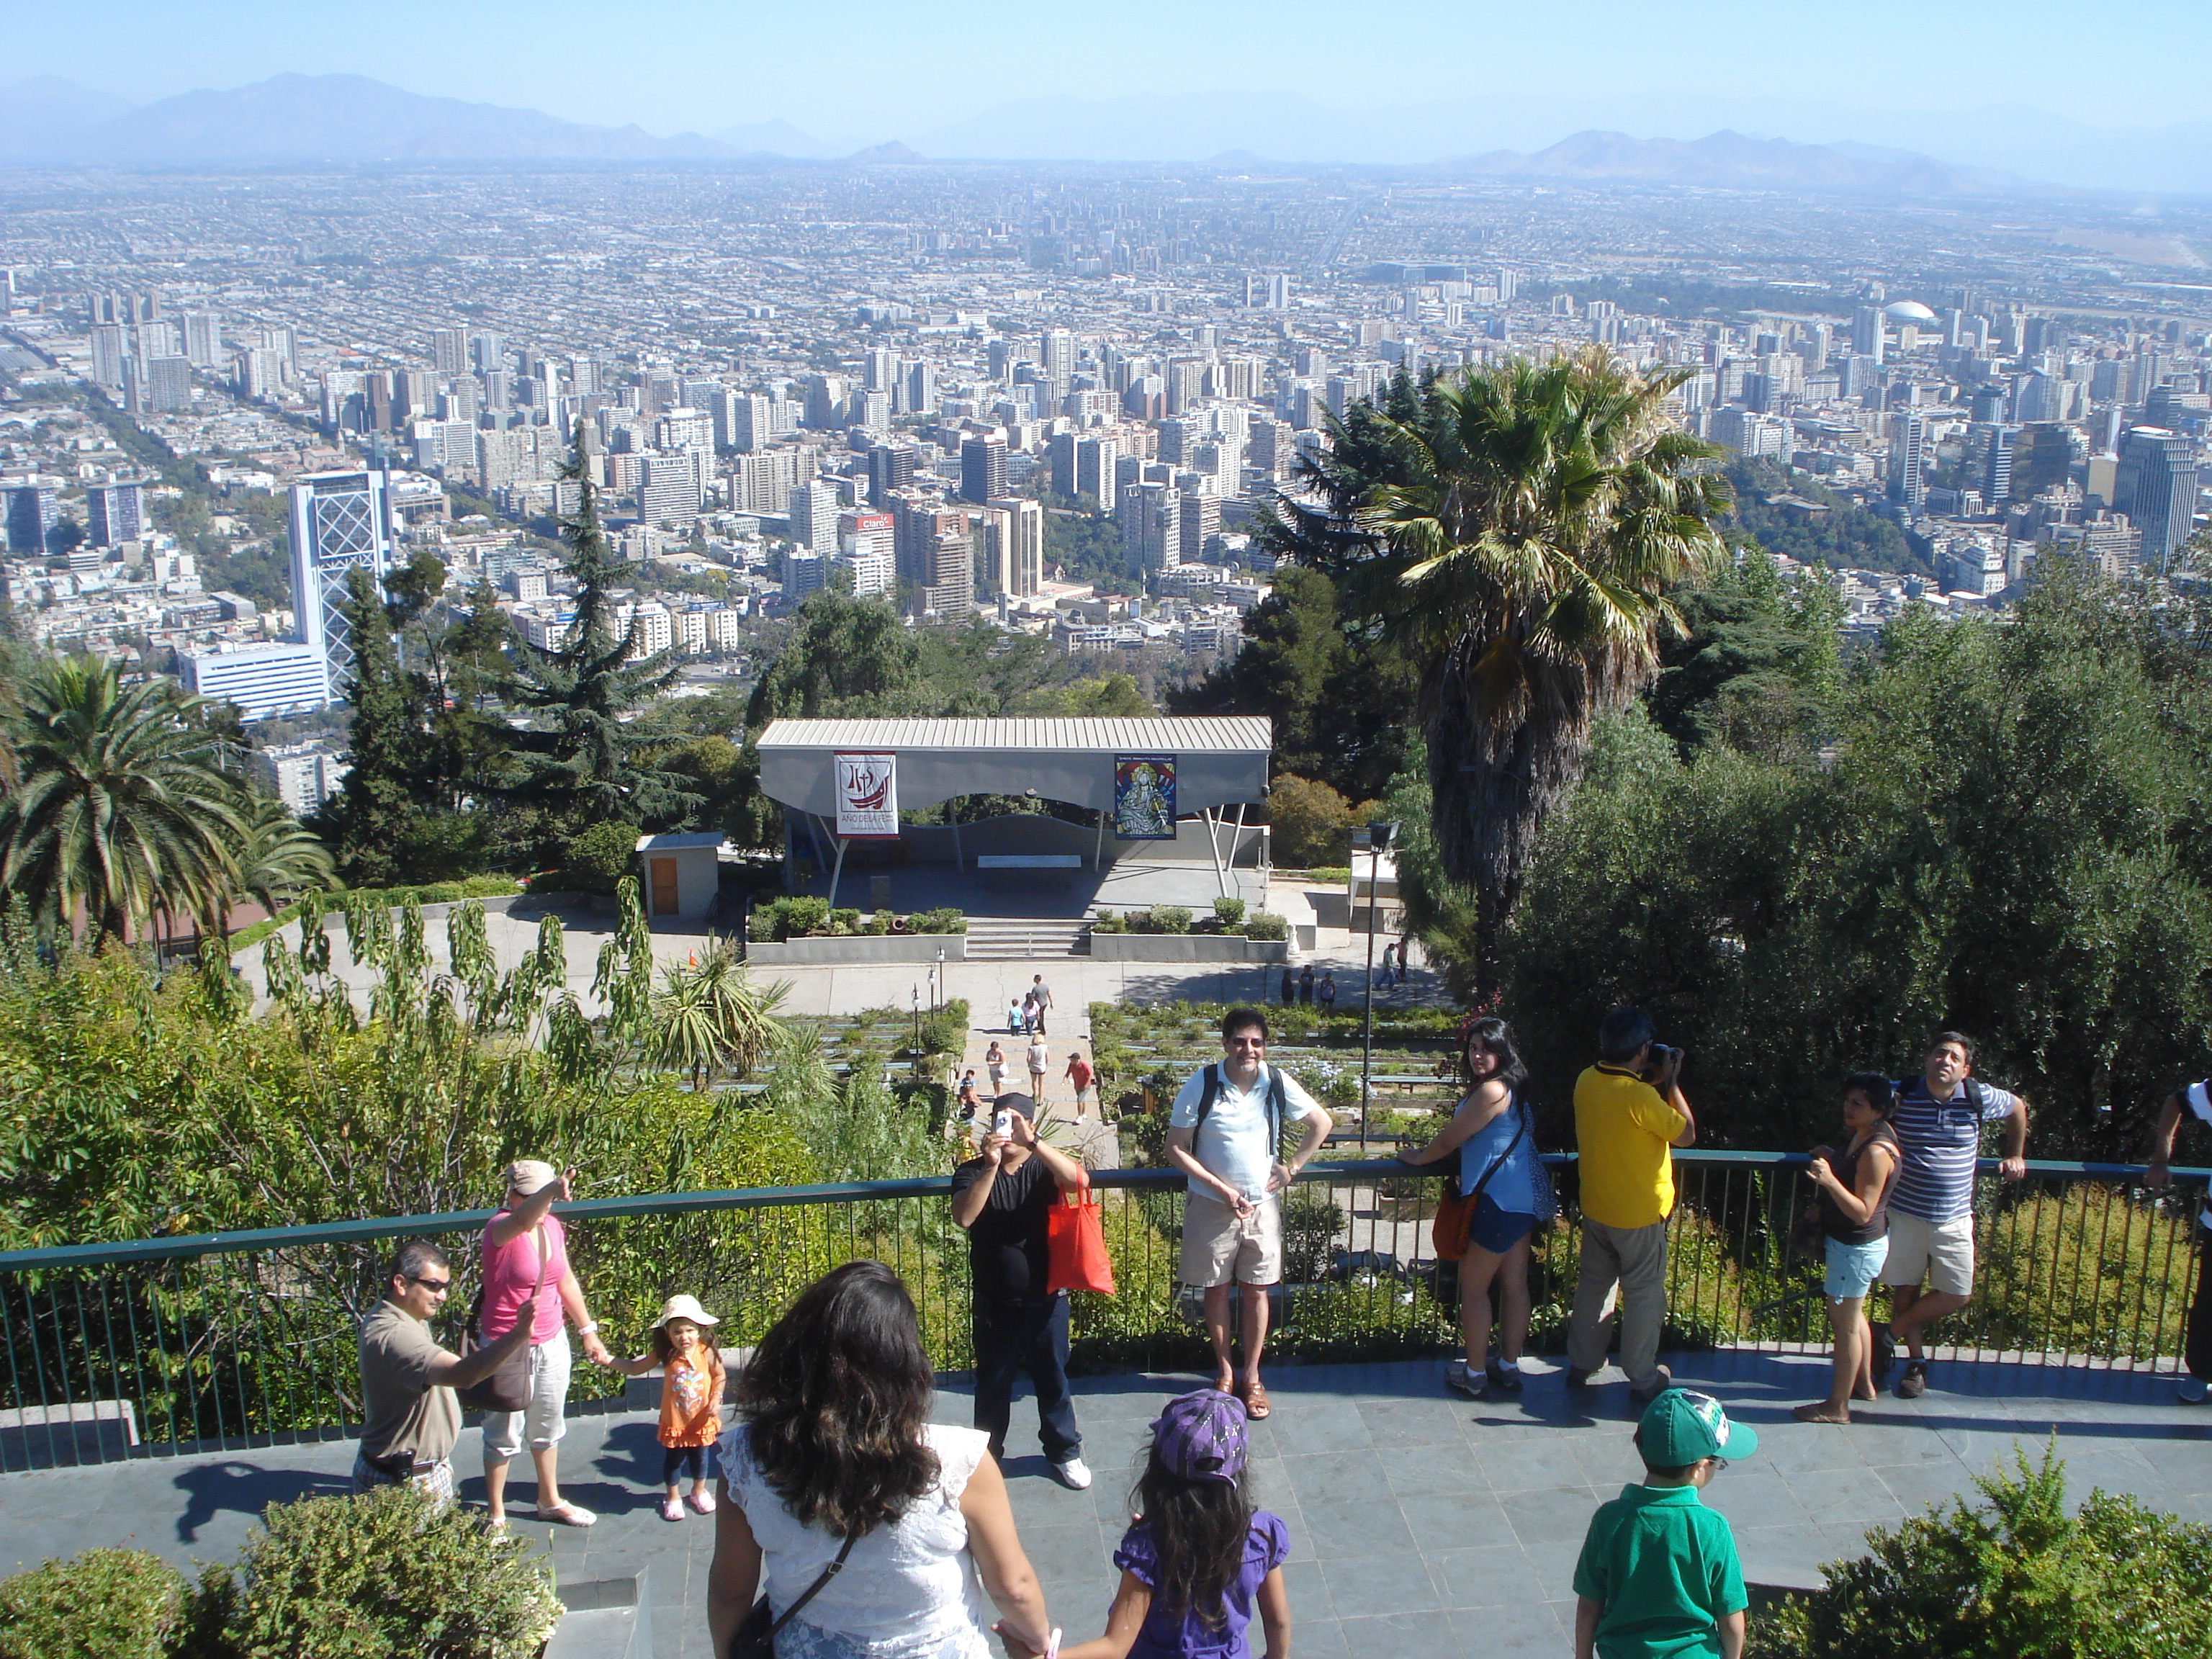 View of Santiago from the Cerro San Cristobal